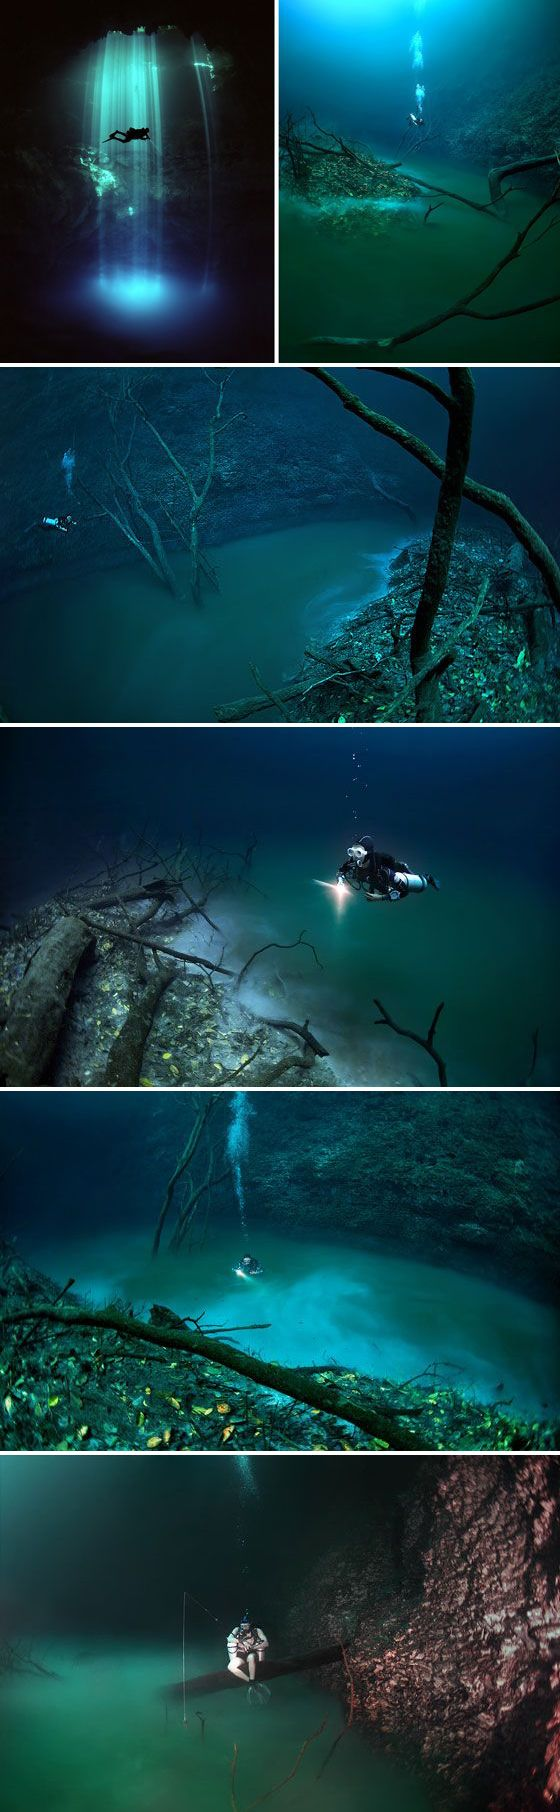 """Underwater River in Cave, Mexico's Yucatan Peninsula called Cenote Angelita or """"Little Angel"""" Photographed by Anatoly Beloshchin"""